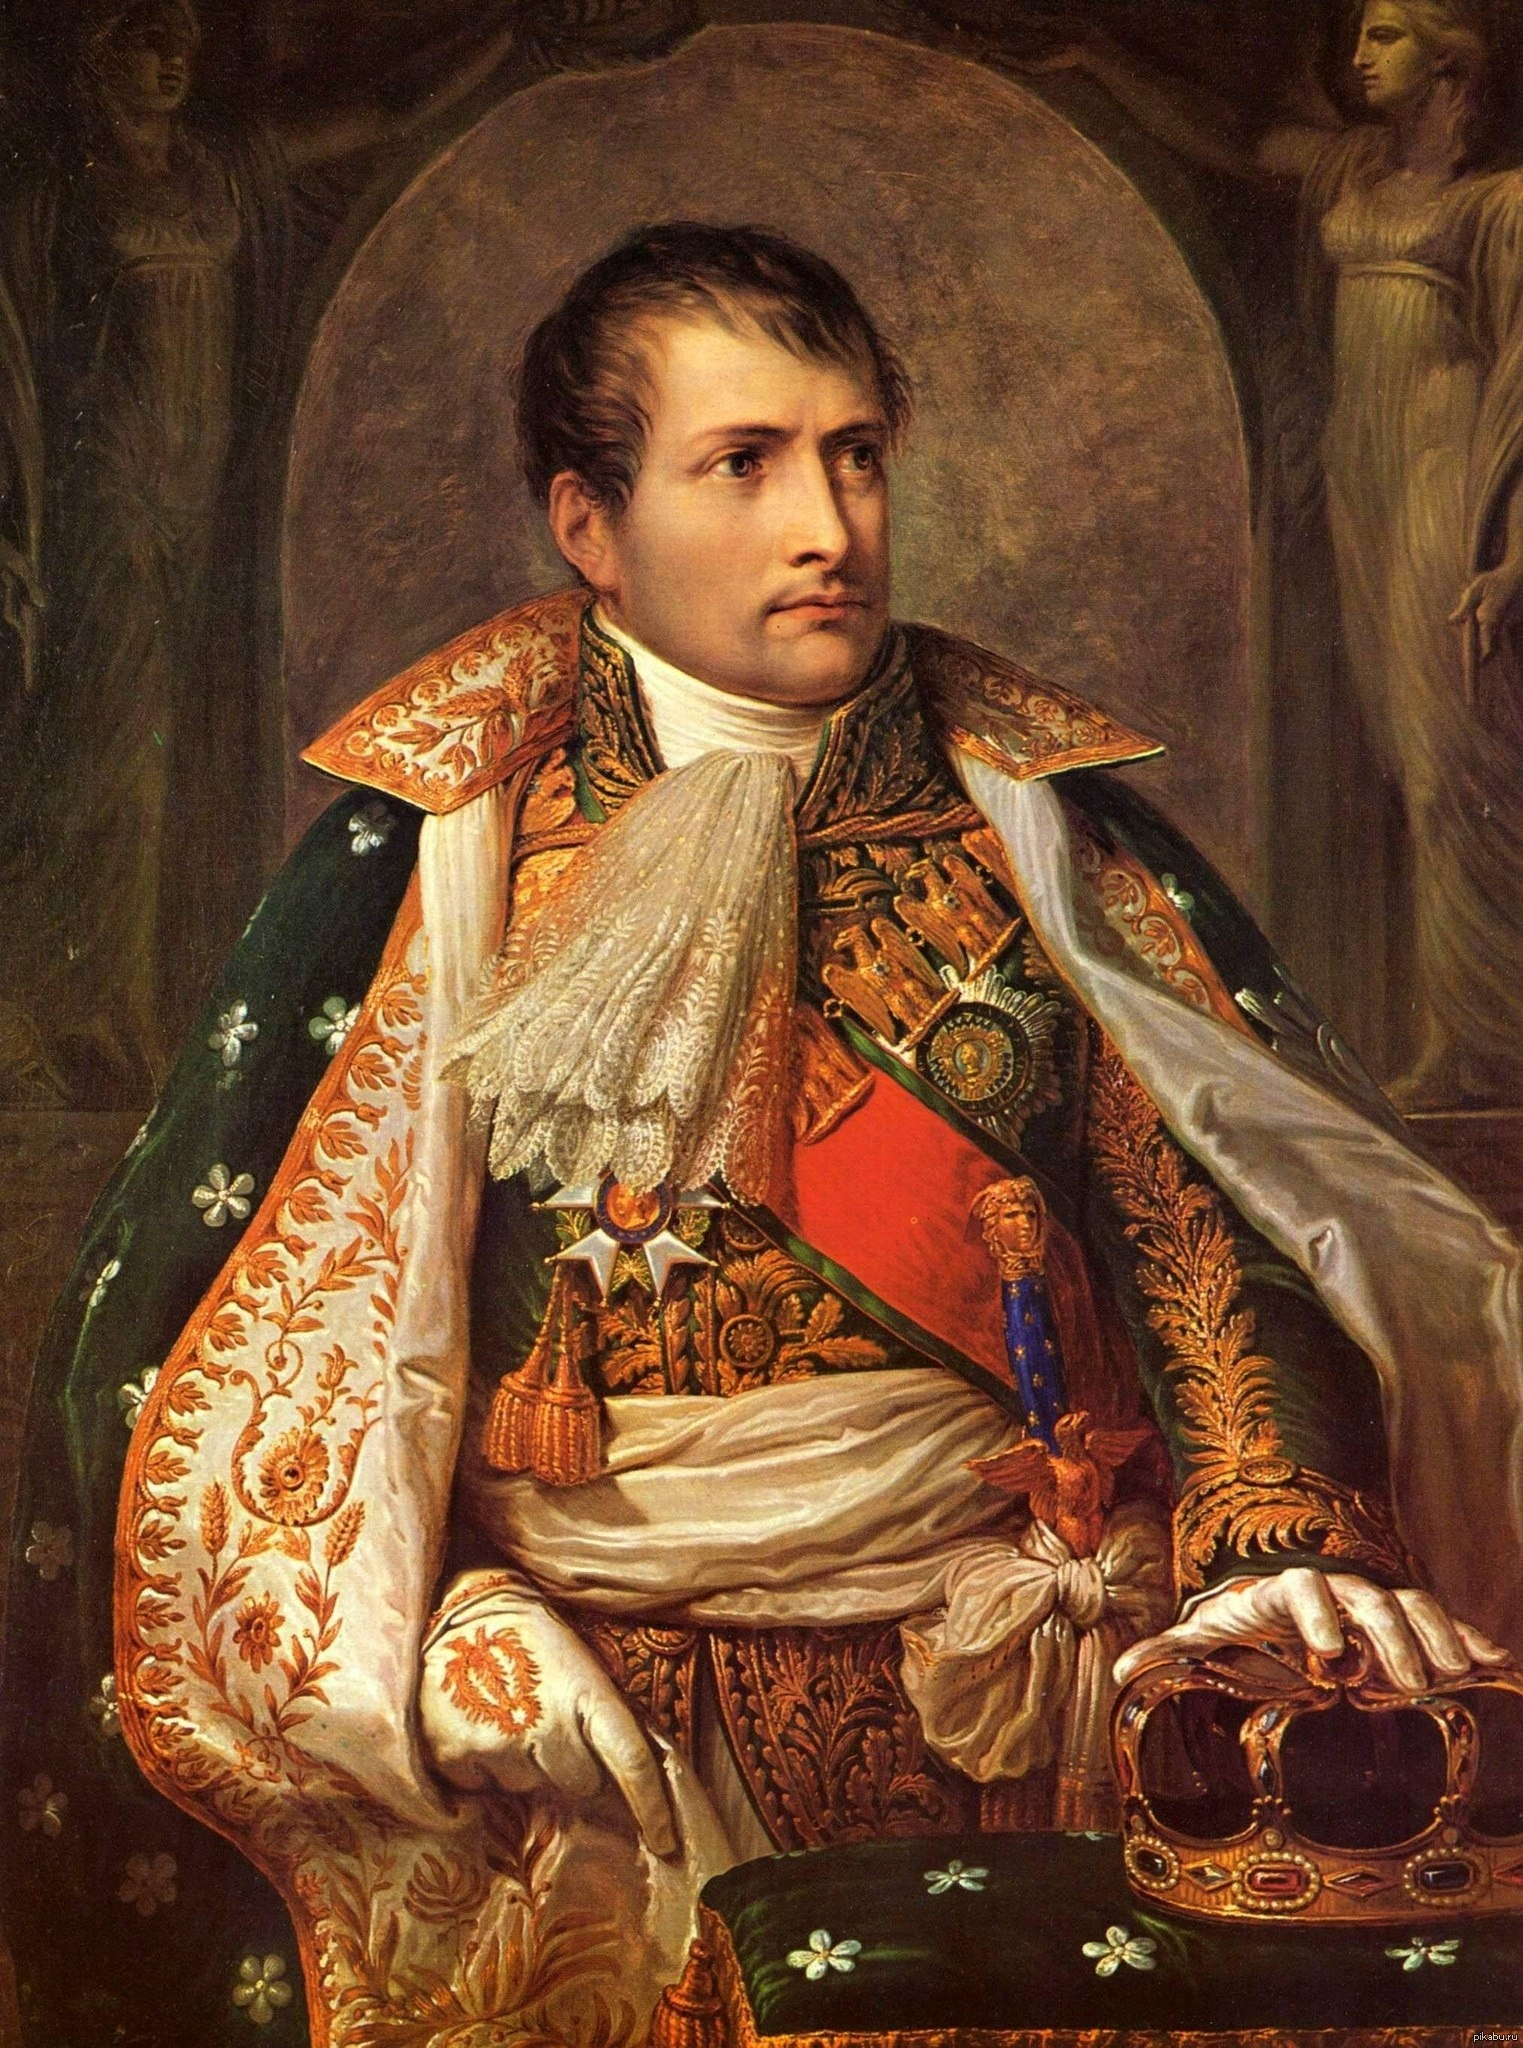 a comparison of julius caesar and napoleon bonaparte as military leaders